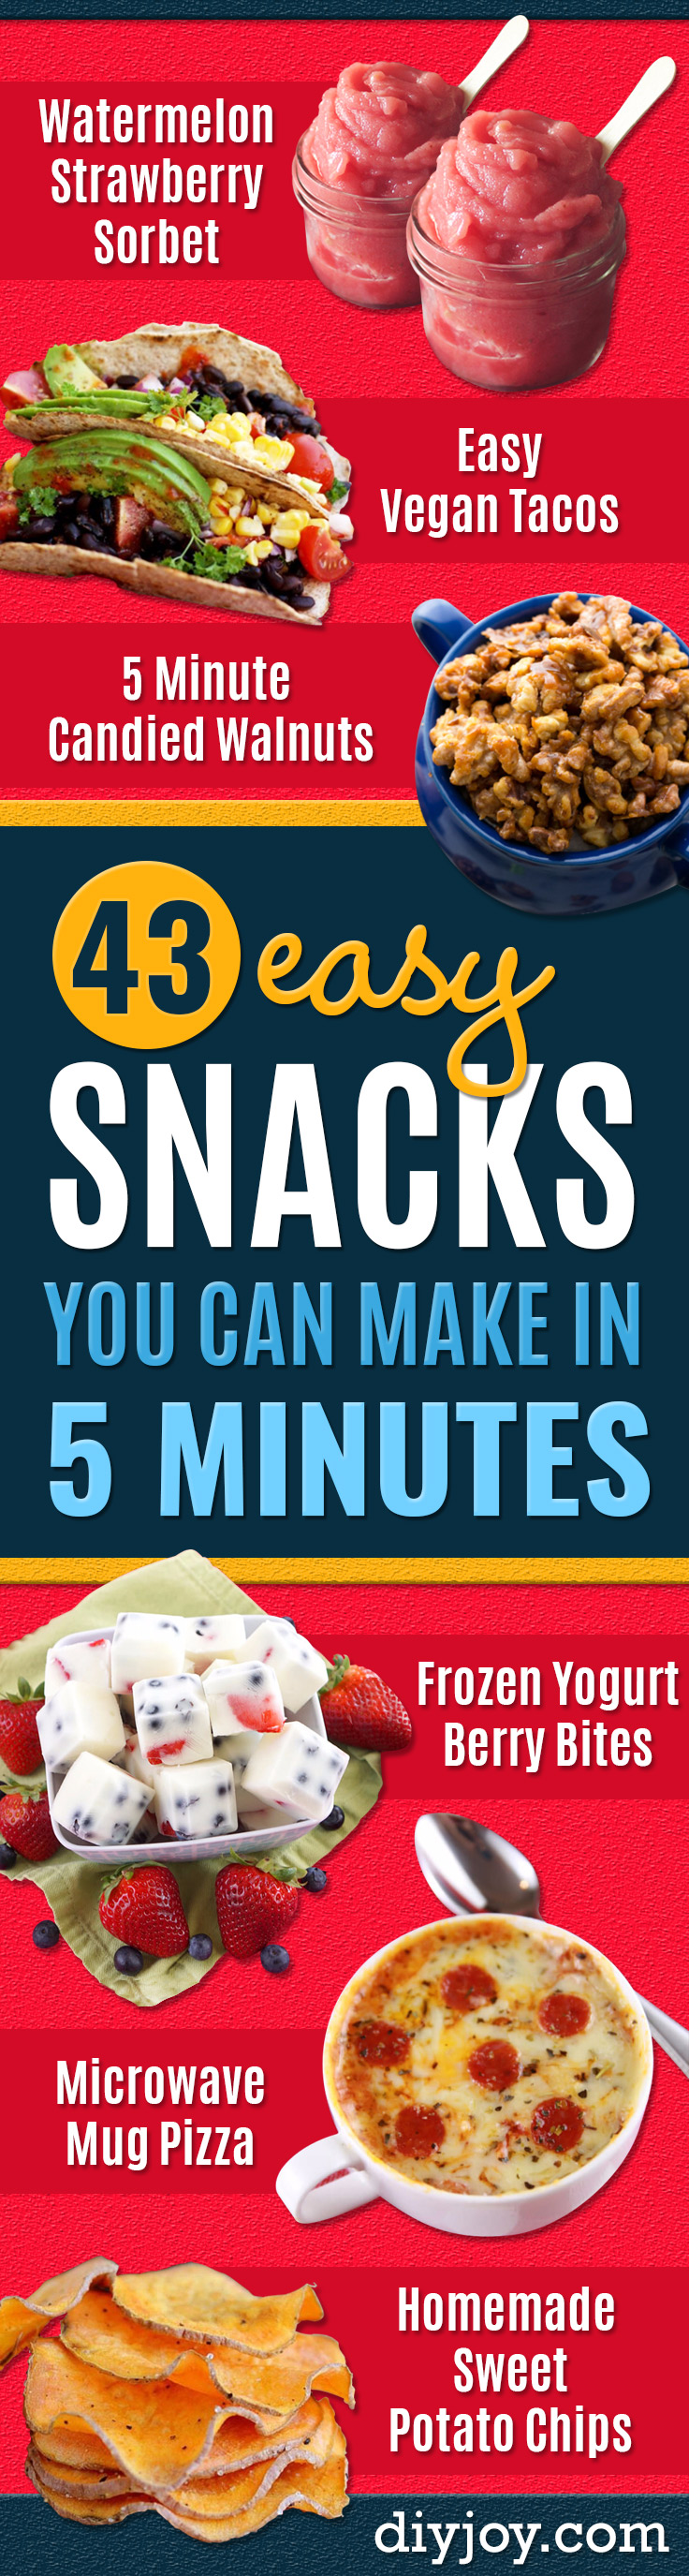 Easy Snacks You Can Make In Minutes - Quick Recipes for Appetizers and After School Snack - Fast Ideas for Instant Small Meals and Treats - No Bake, Microwave and Simple Prep Makes Snacking Fun